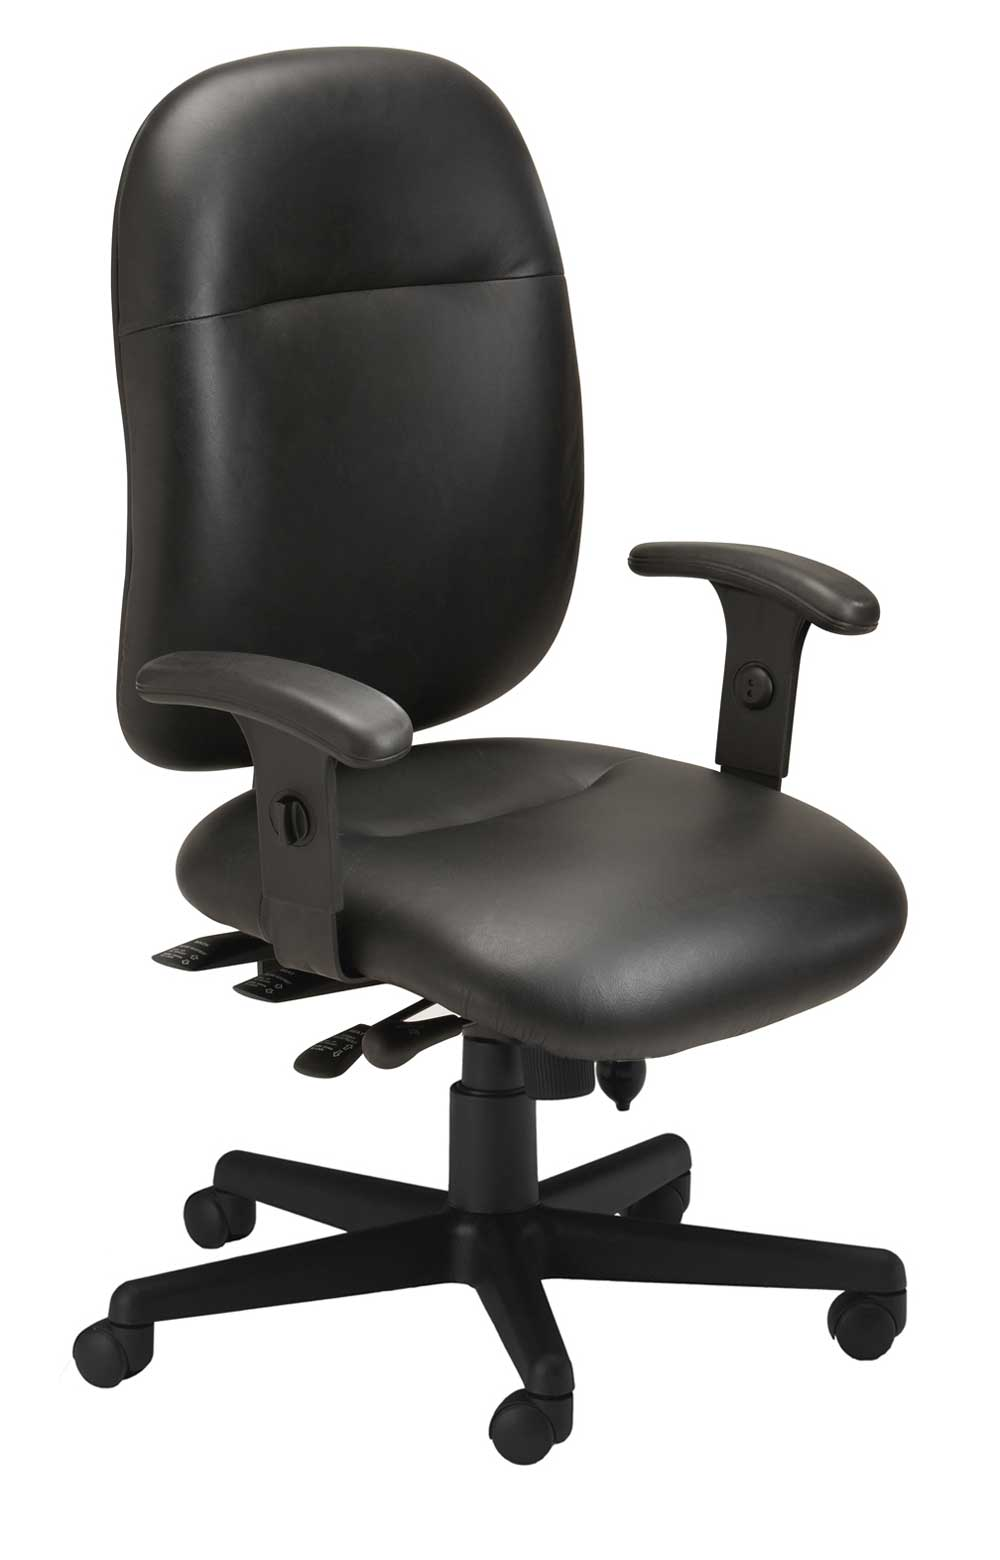 best posture work chair gel cushions for chairs comfortable desk to enjoy